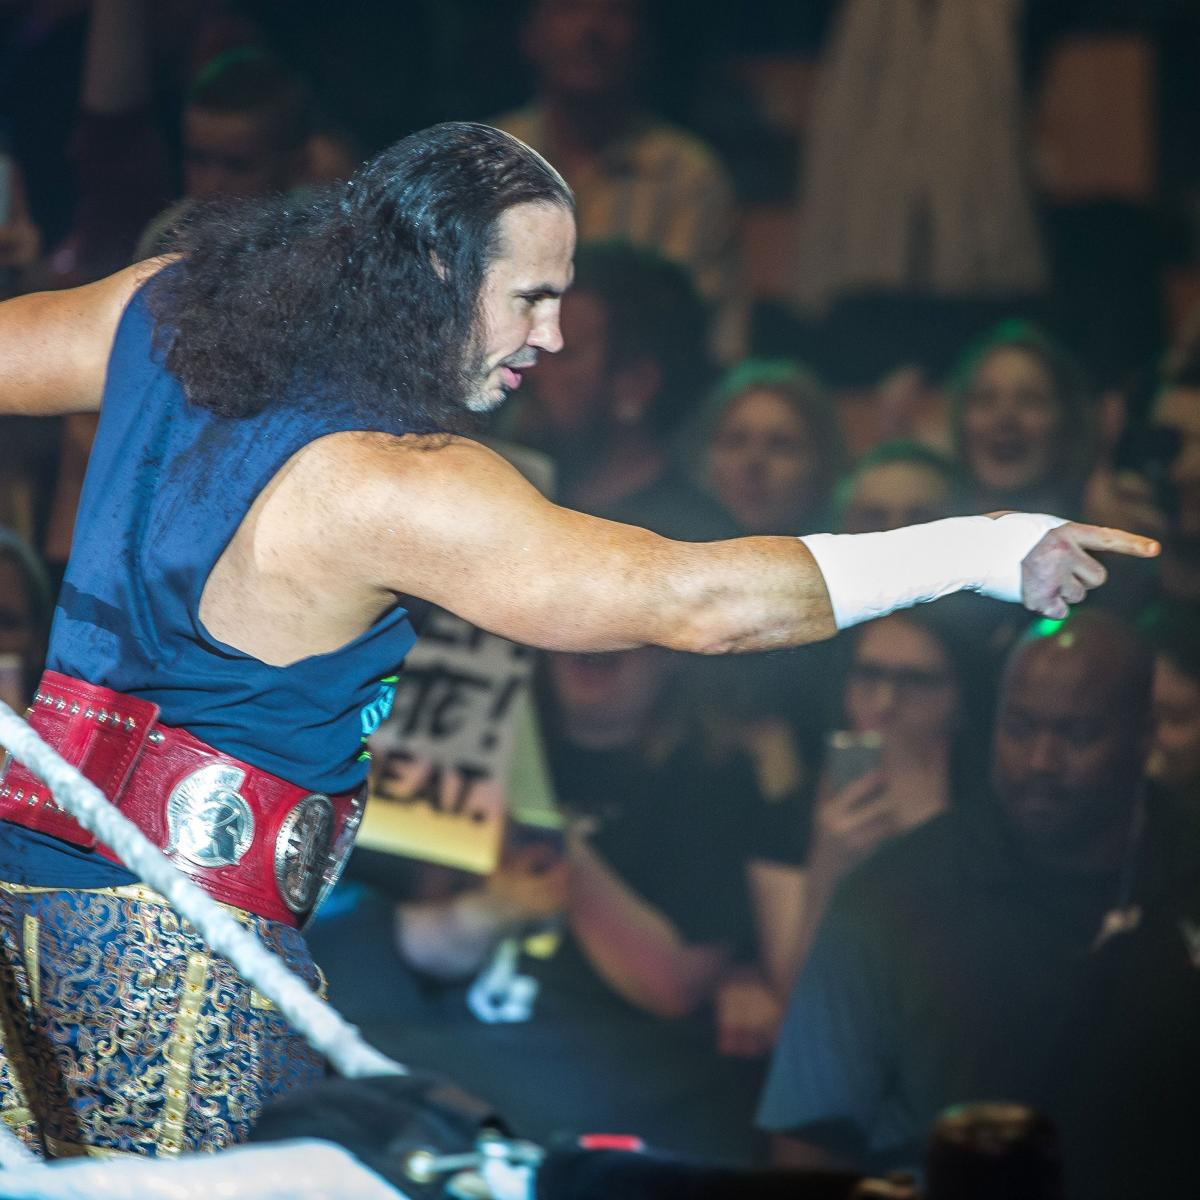 Matt Hardy Teases AEW in Cryptic Tweet About WWE Future After Orton's Attack